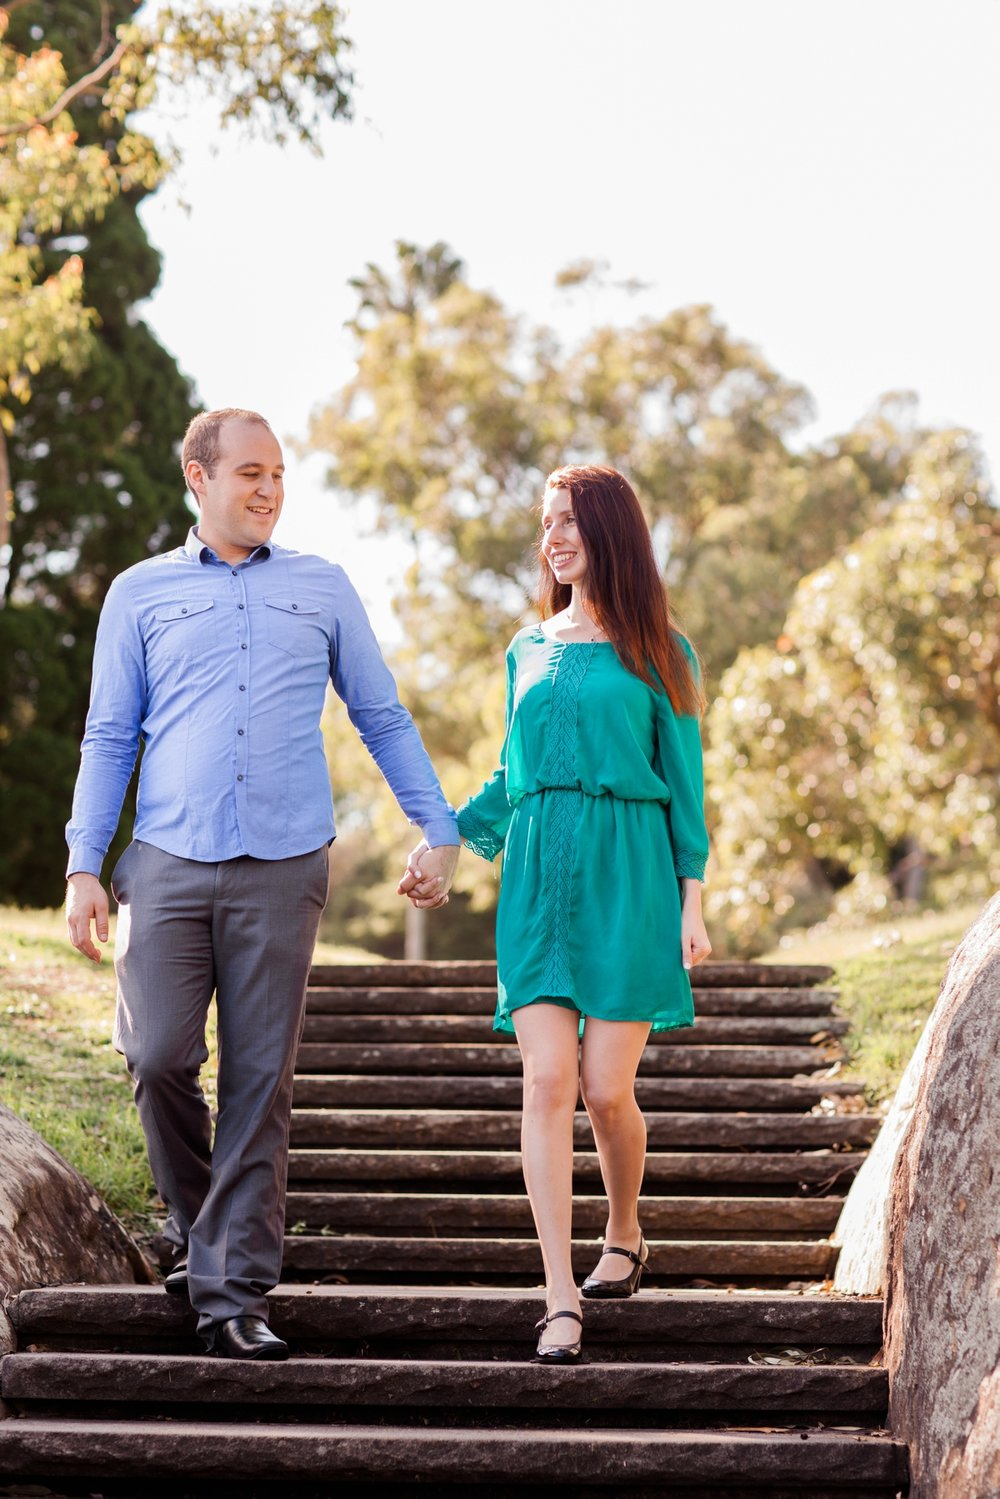 Couples session Sydney by Mr Edwards_3579.jpg